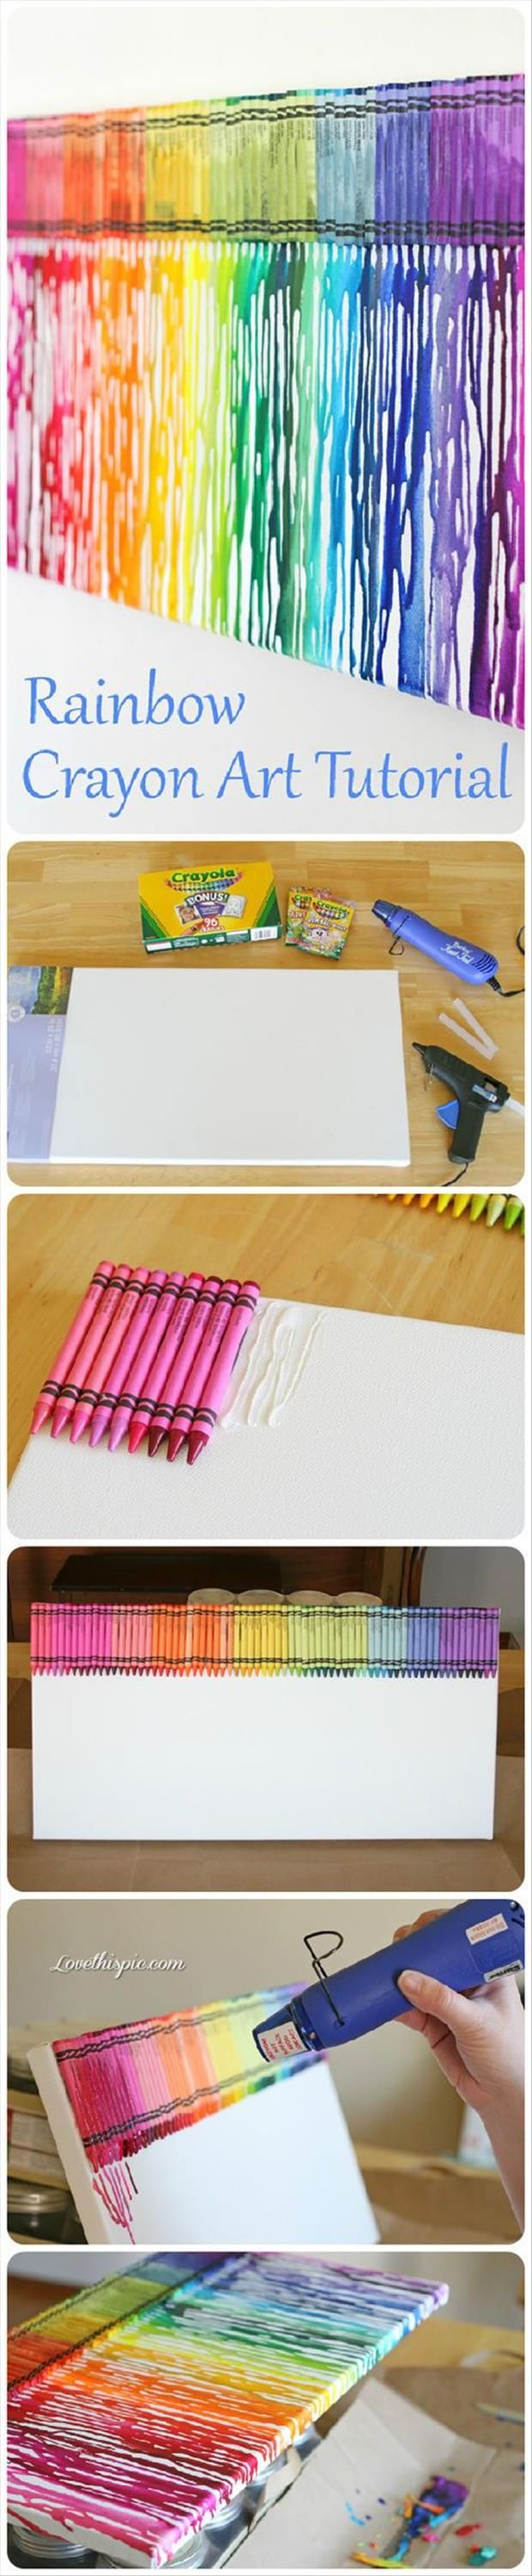 Crayon melting art images amp pictures becuo - Love It Diy Rainbow Art Crayon Tutorial Colorful Crayons Diy Crafts Home Made Easy Crafts Craft Idea Crafts Ideas Diy Ideas Diy Crafts Diy Idea Kids Crafts